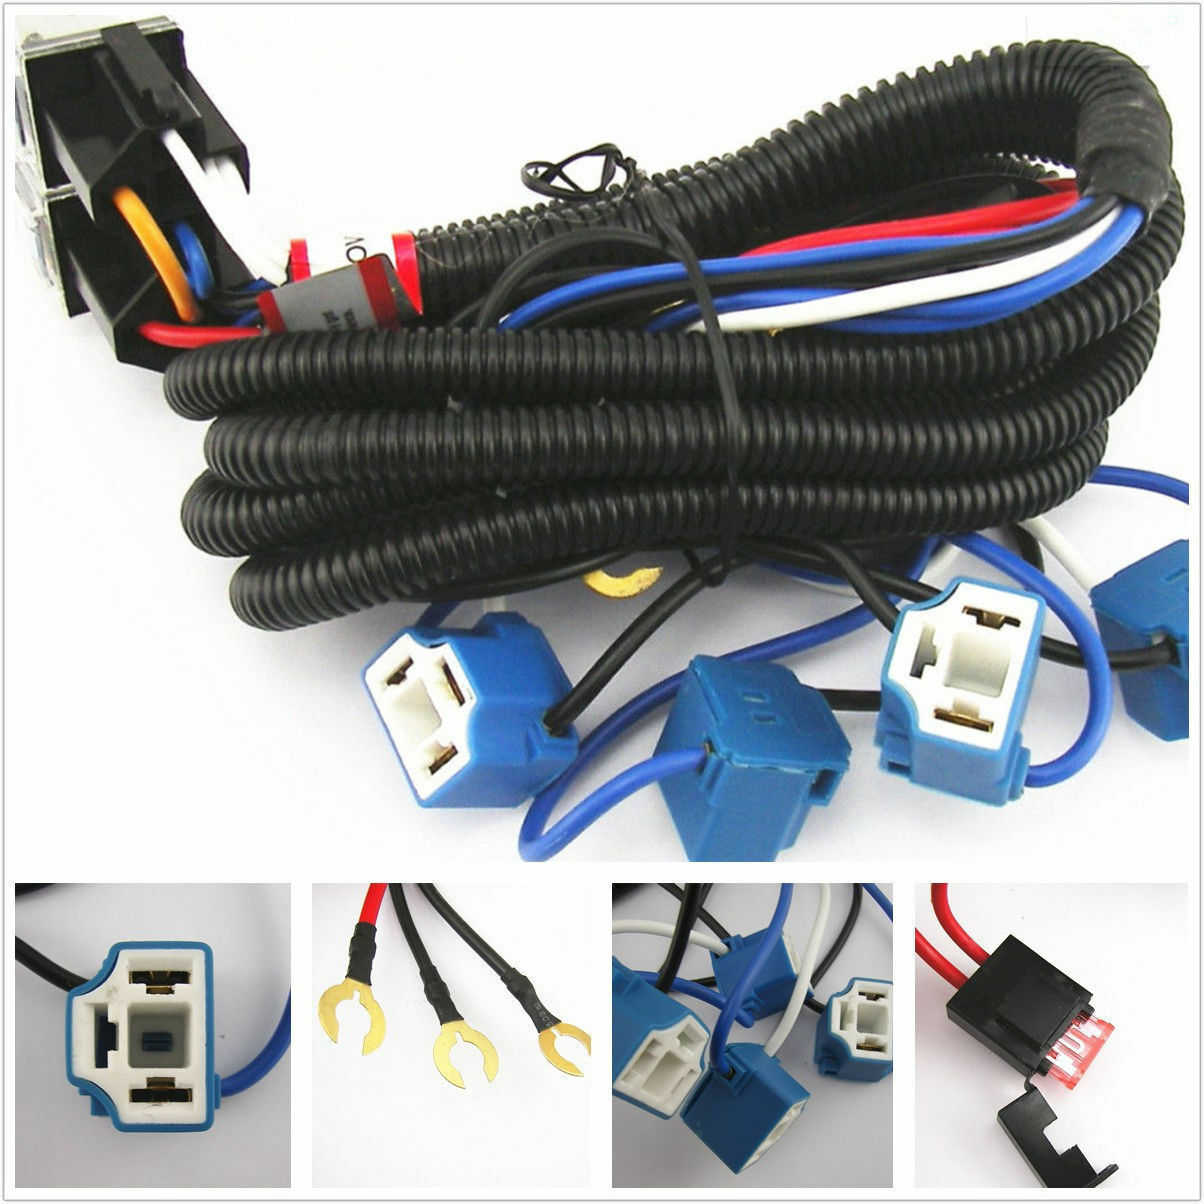 4 Headlight Relay Wiring Harness H4 Headlamp Light Bulb Ceramic Socket Plugs Set 1 Of 7only 2 Available